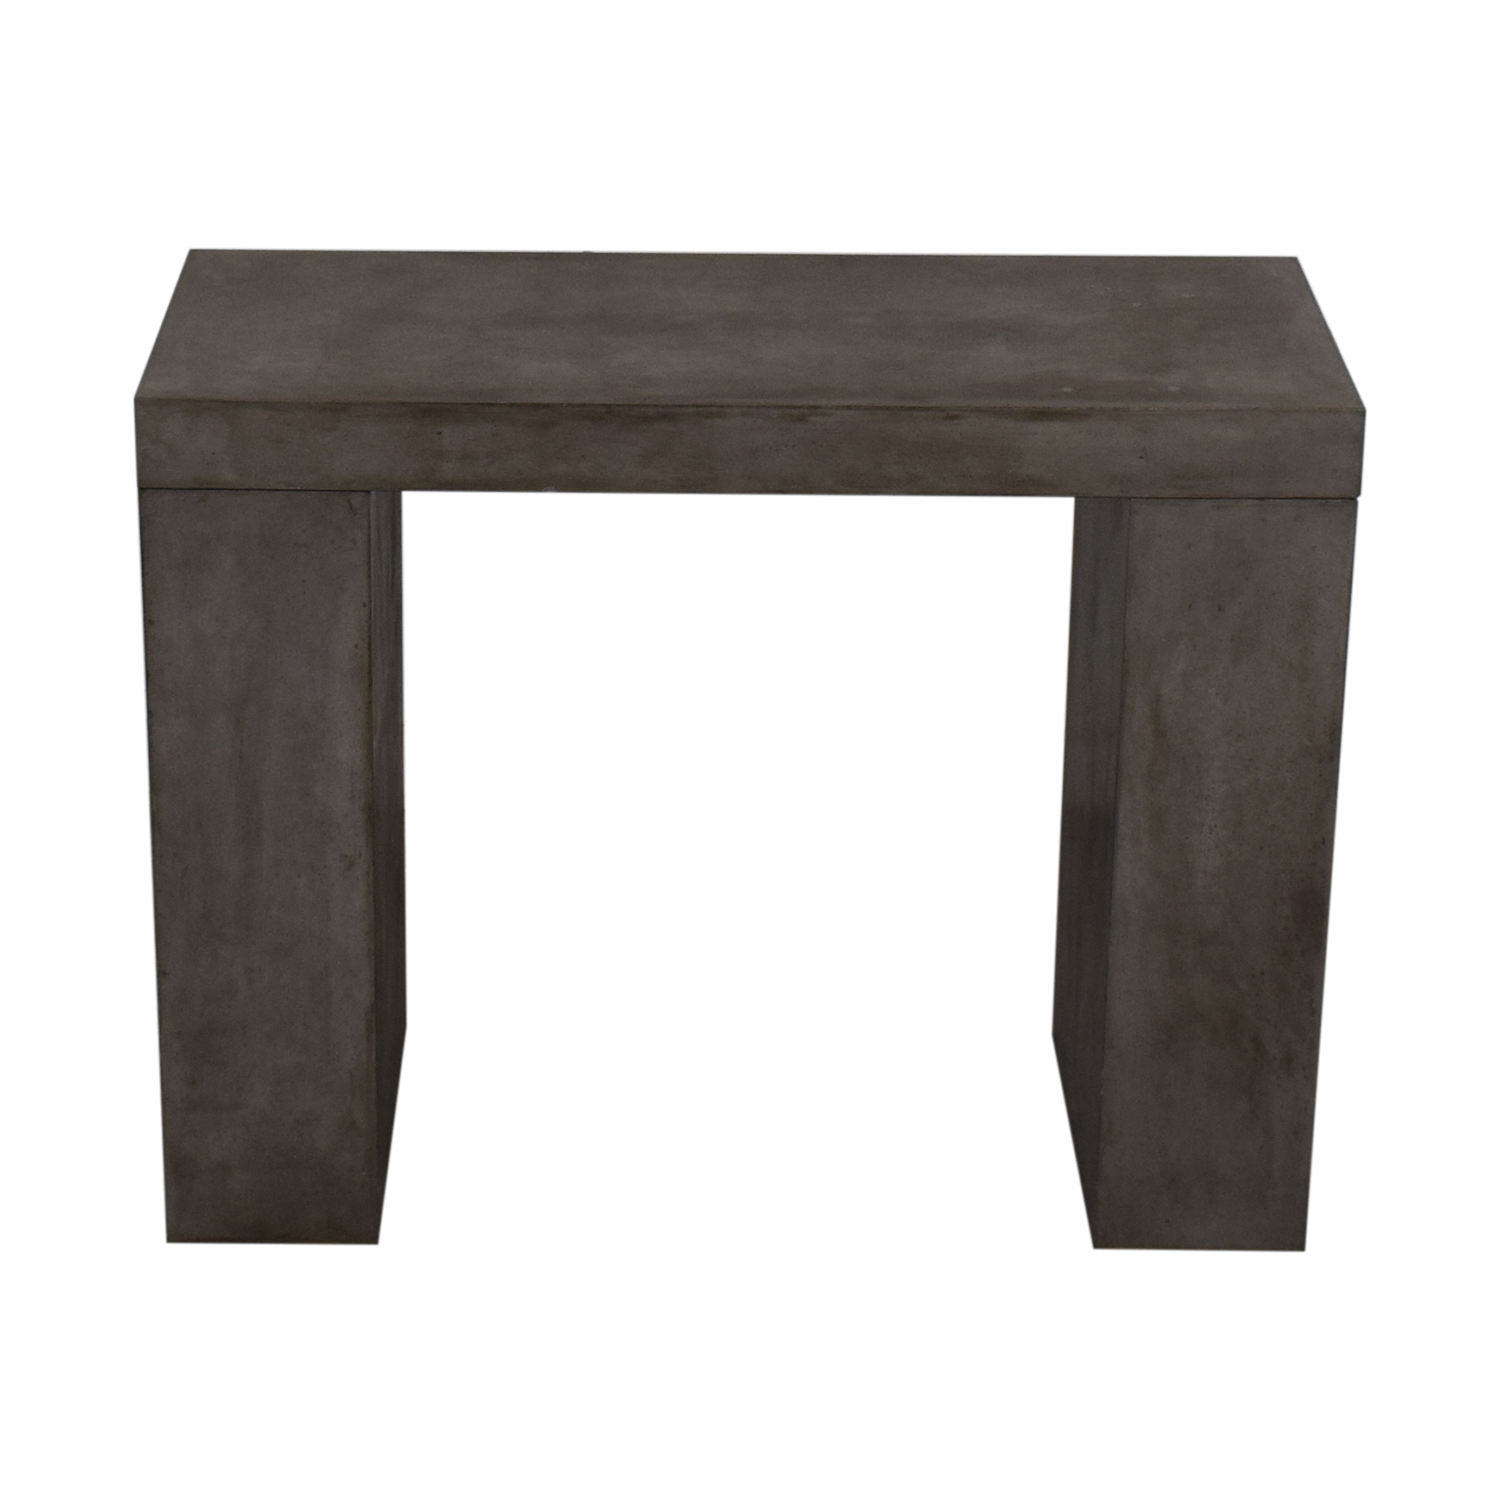 Rustic Concrete Console second hand